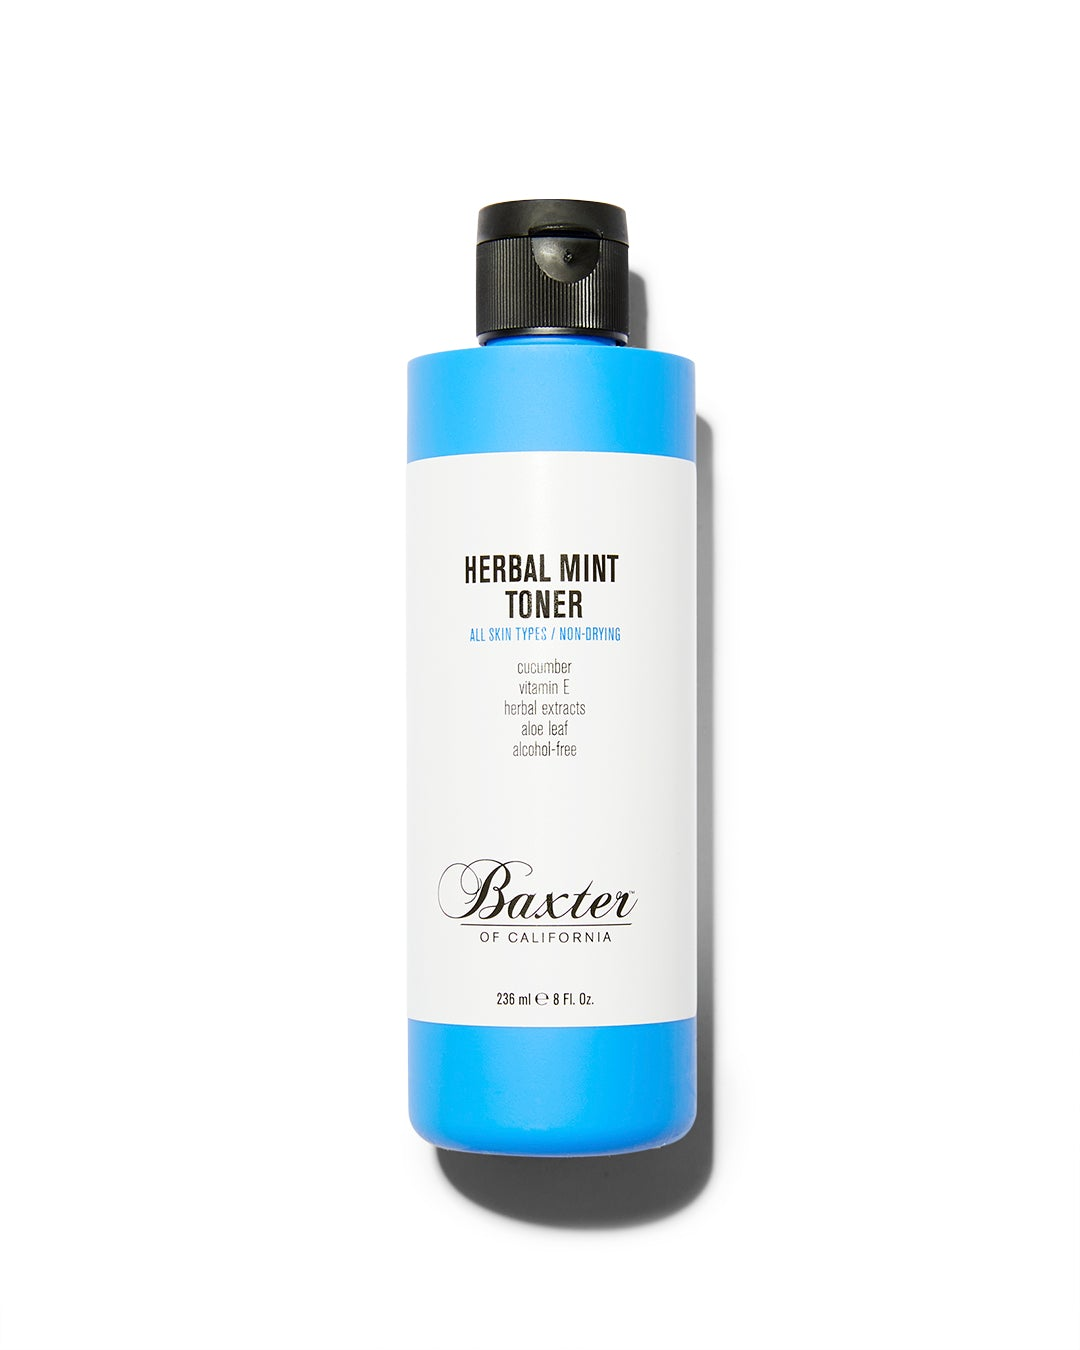 Baxter of California | Herbal Mint Toner